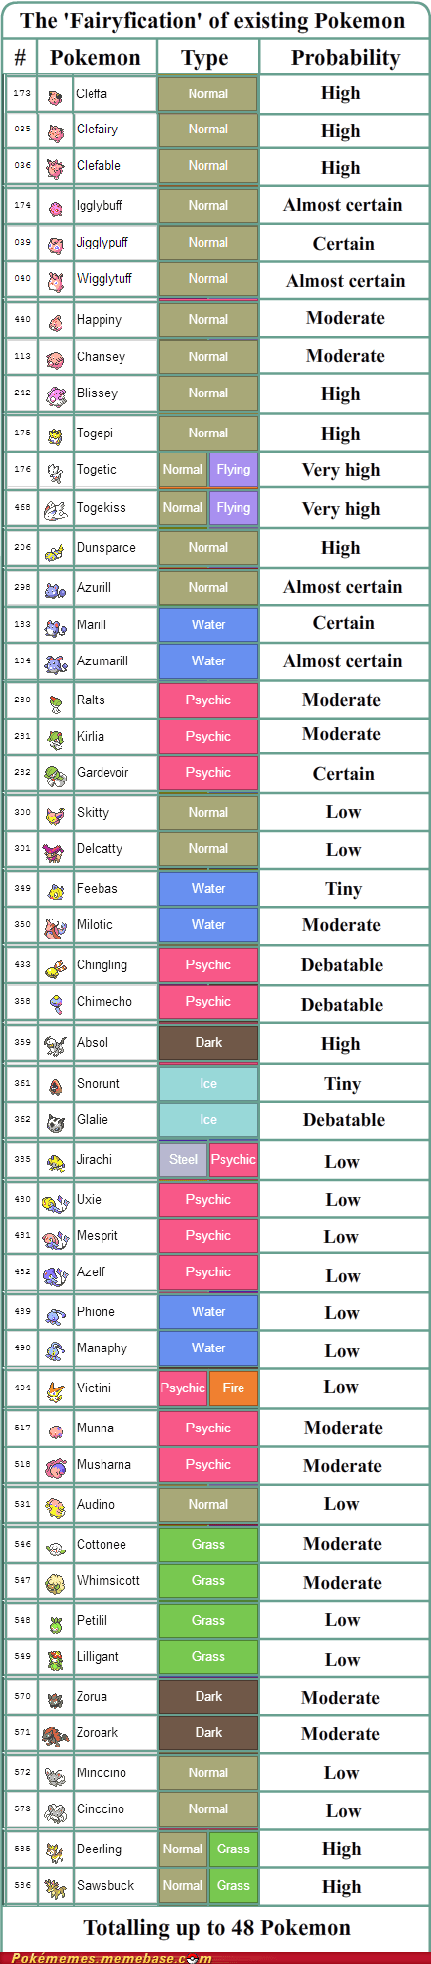 Pokémon,theories,fairy types,speculation